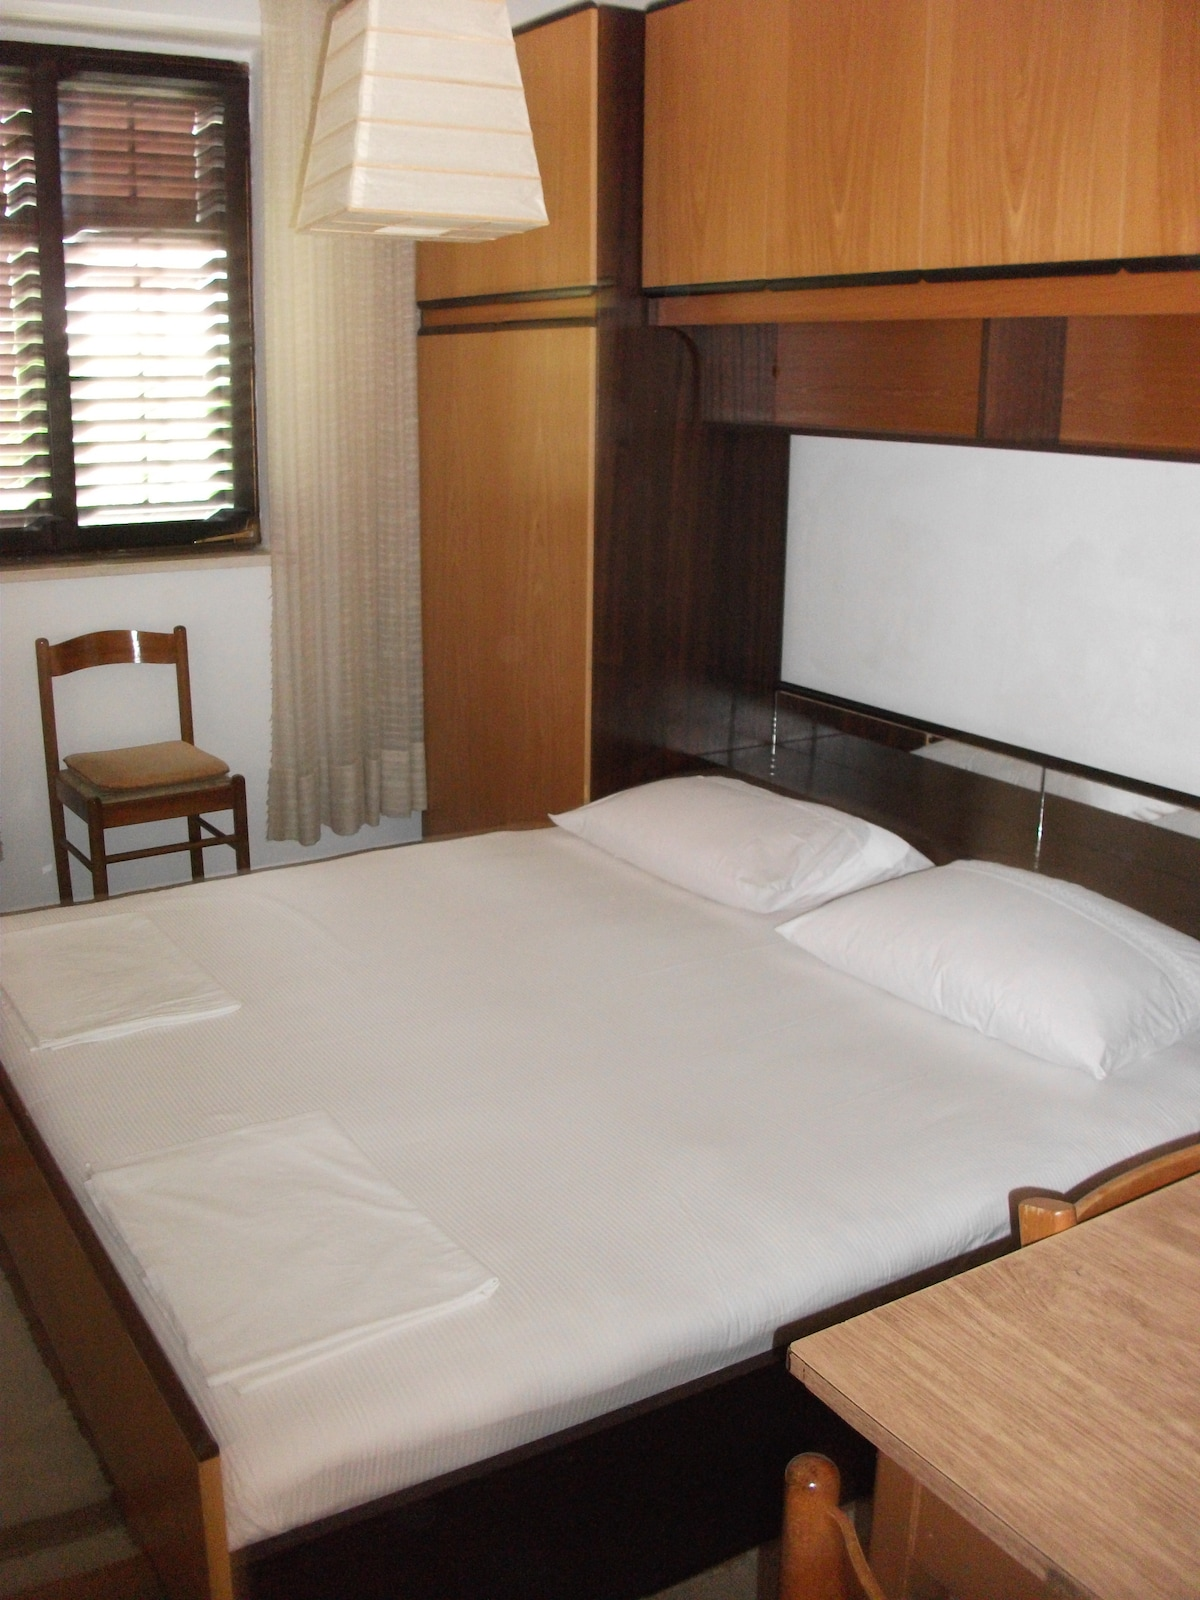 Simple and nice room for 2